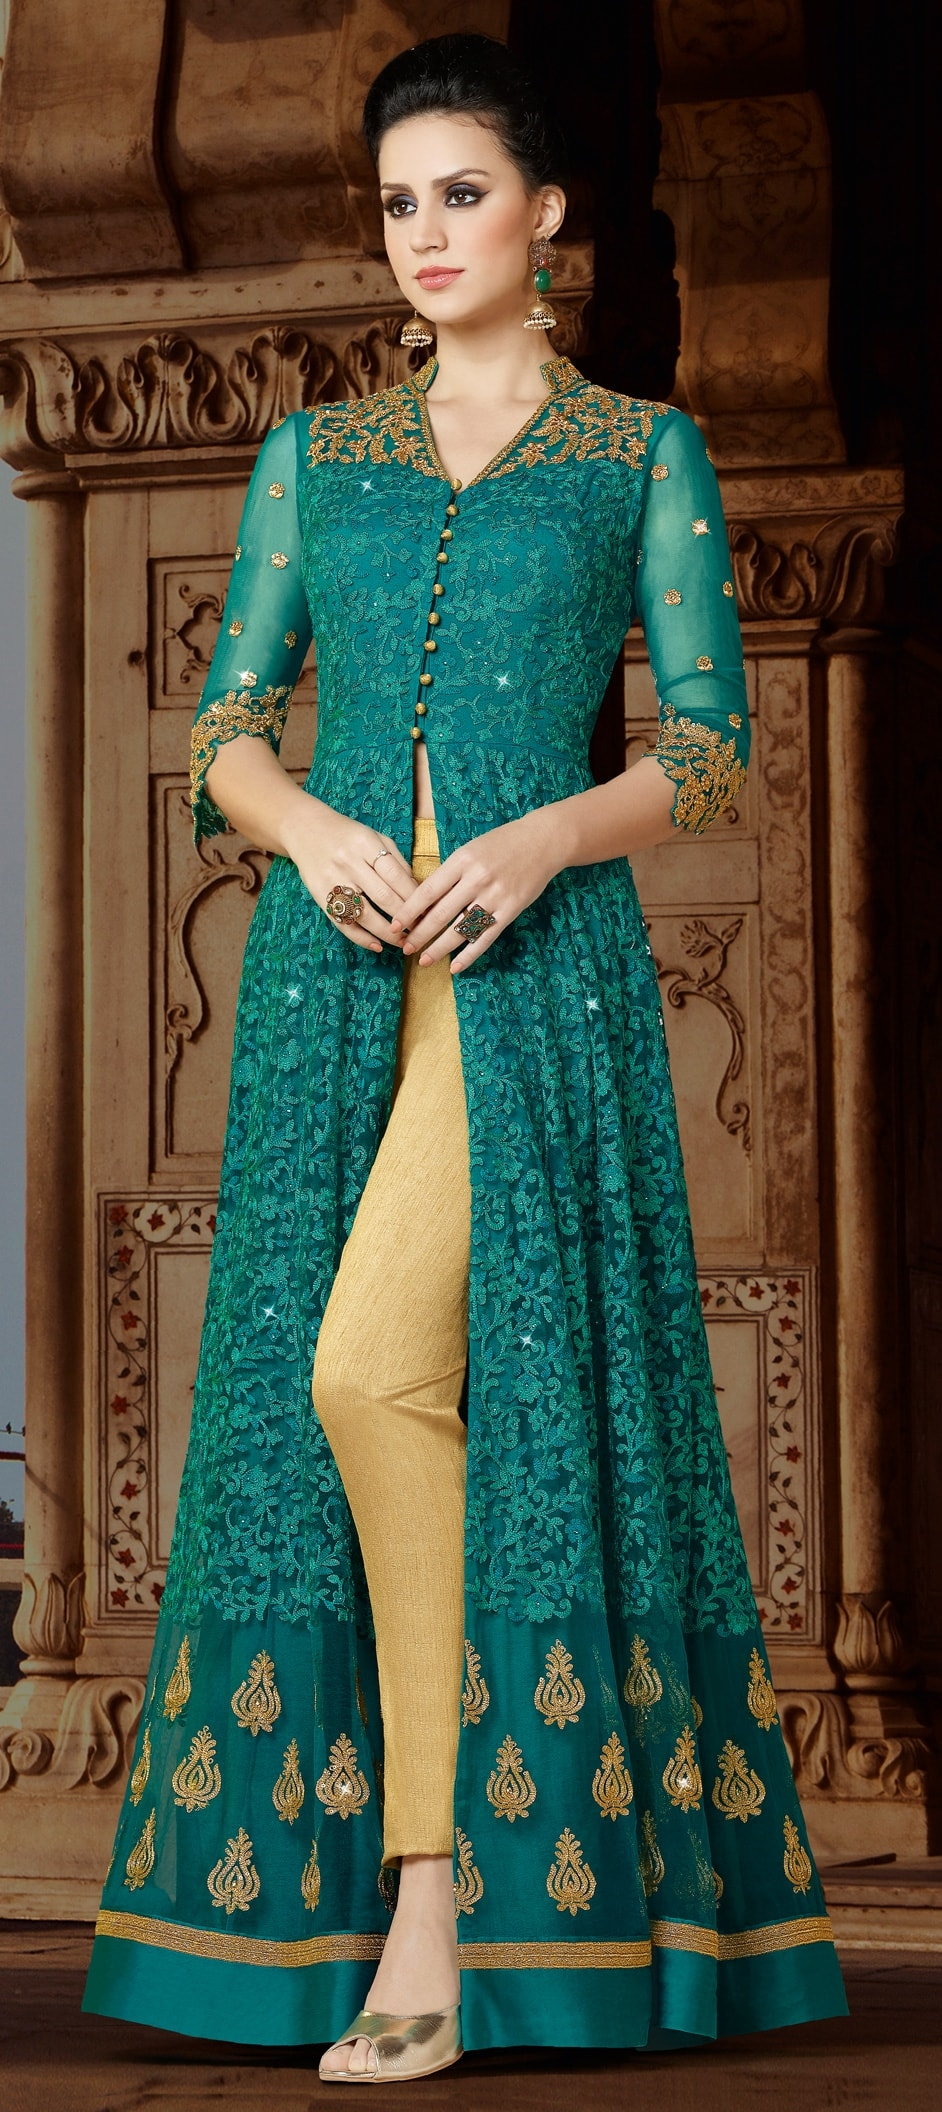 905687: Blue color family unstitched Party Wear Salwar Kameez .